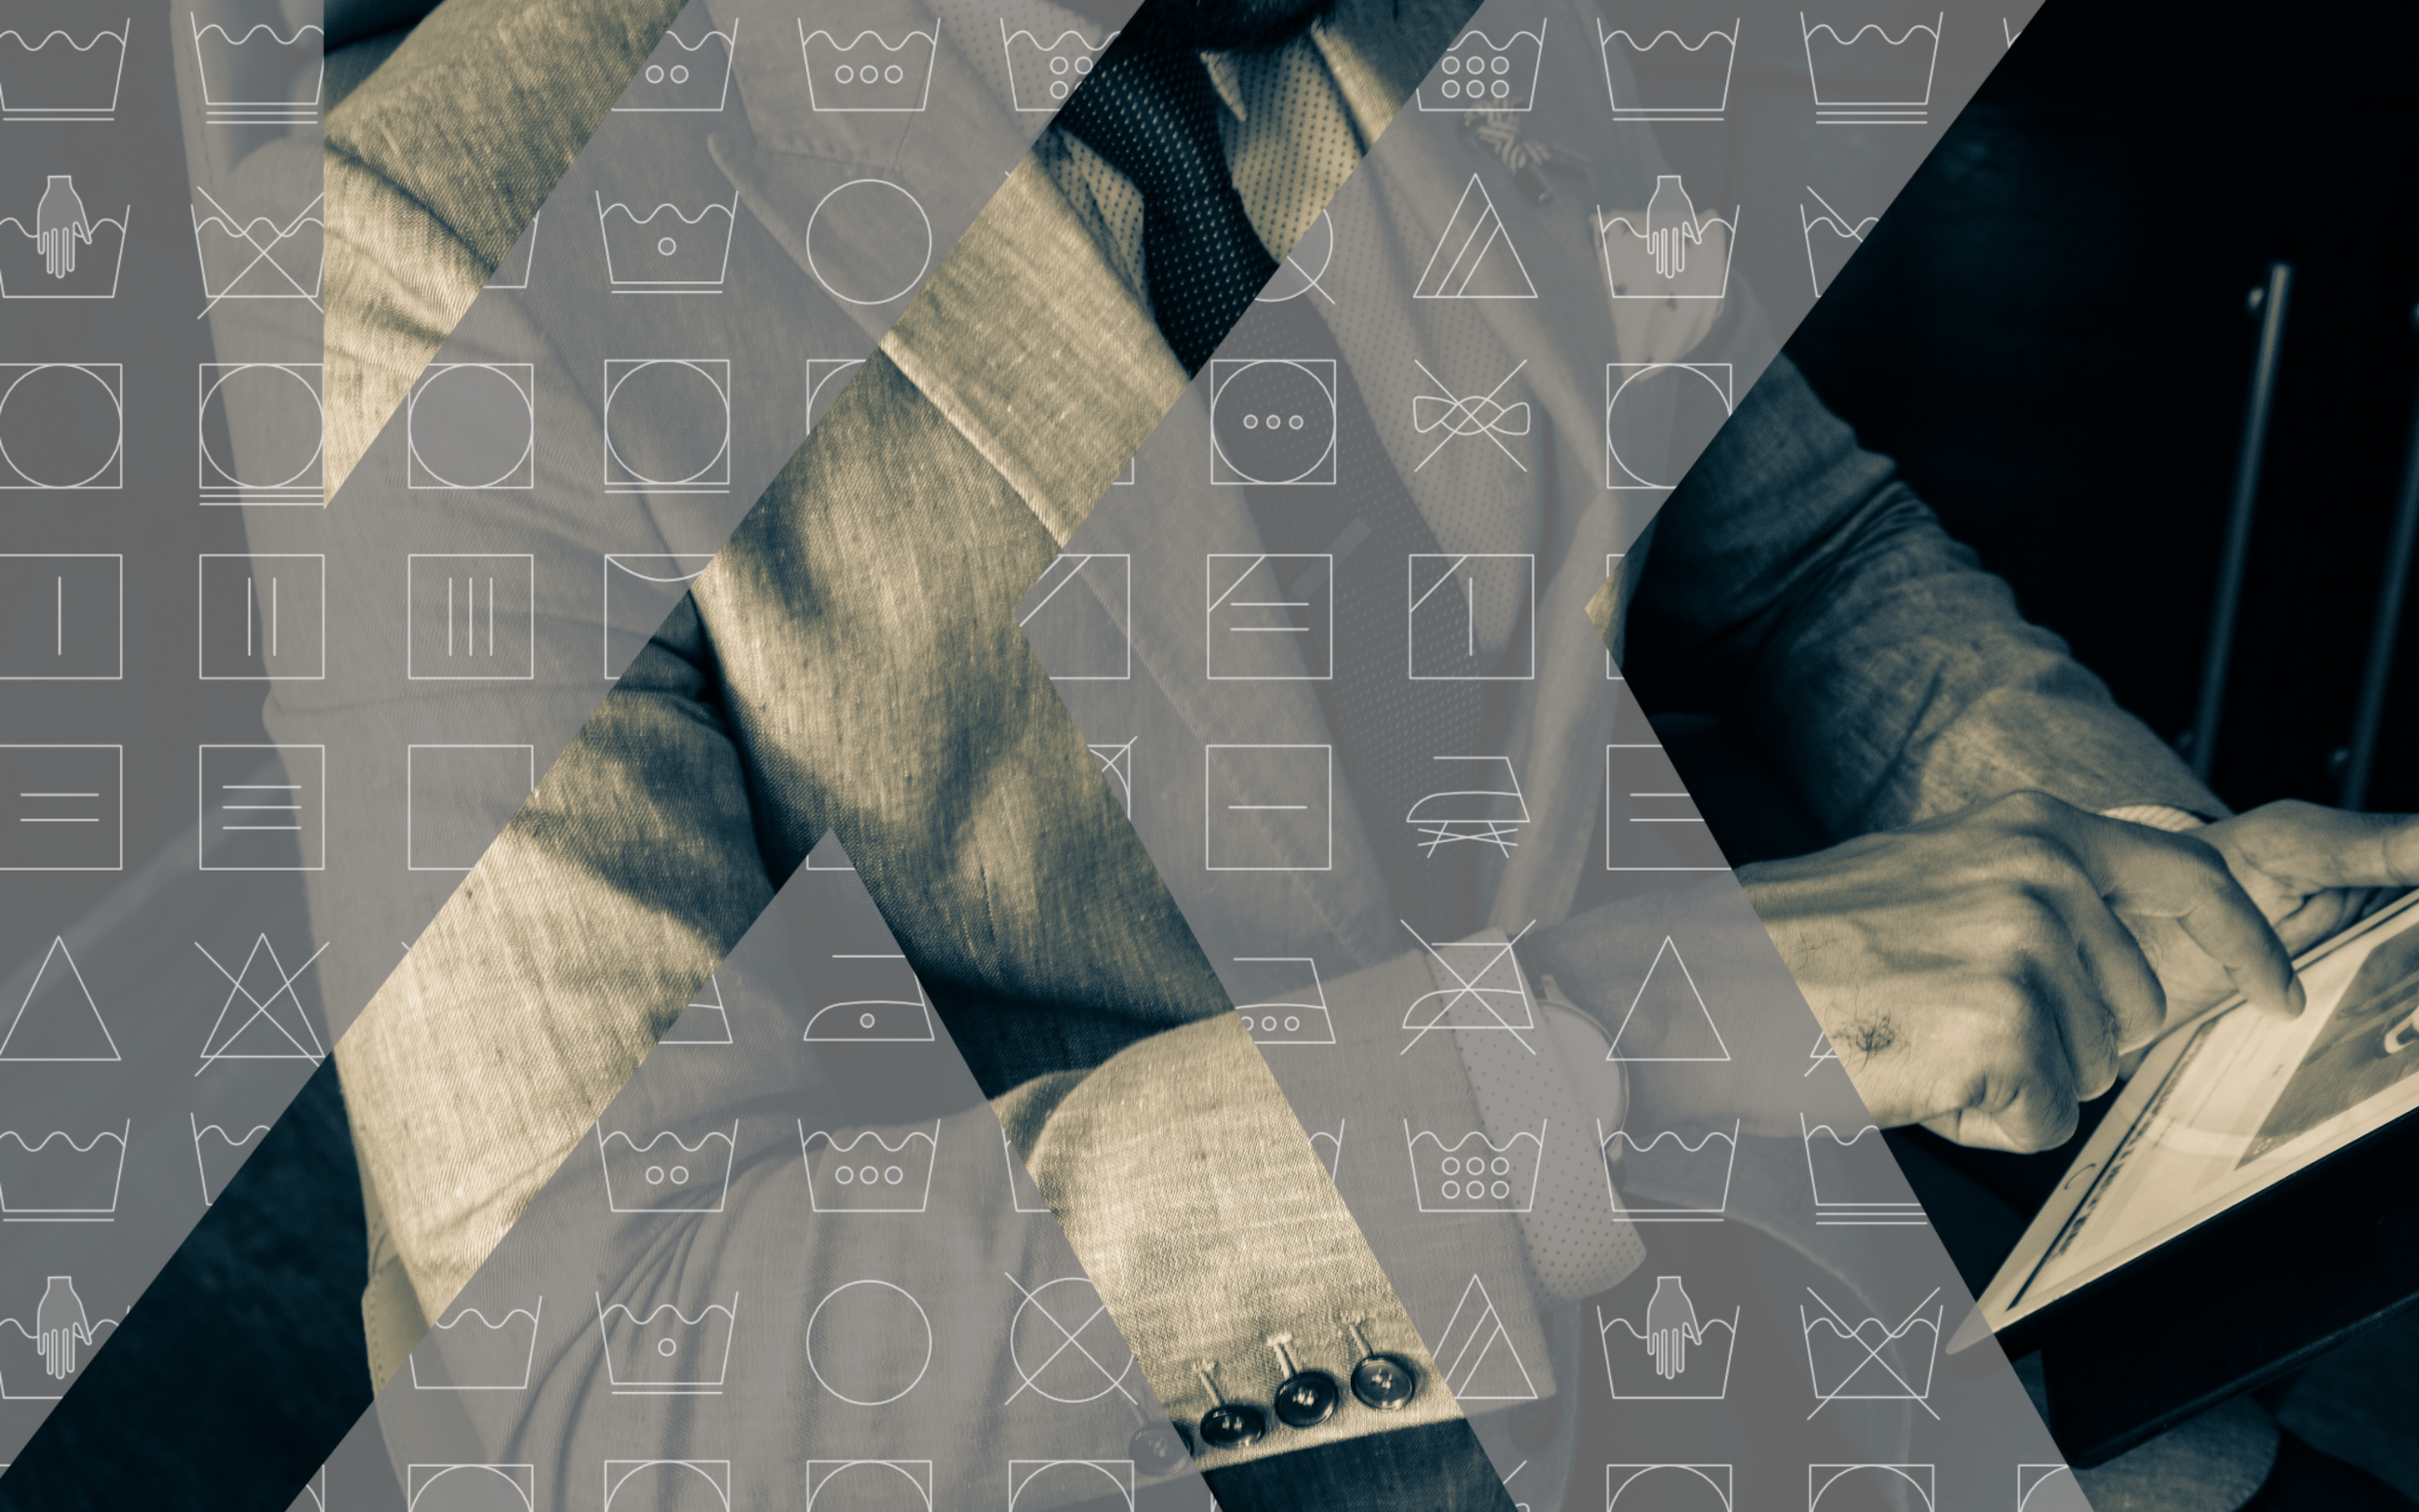 Man in a suit with an overlay of laundry symbols in grey